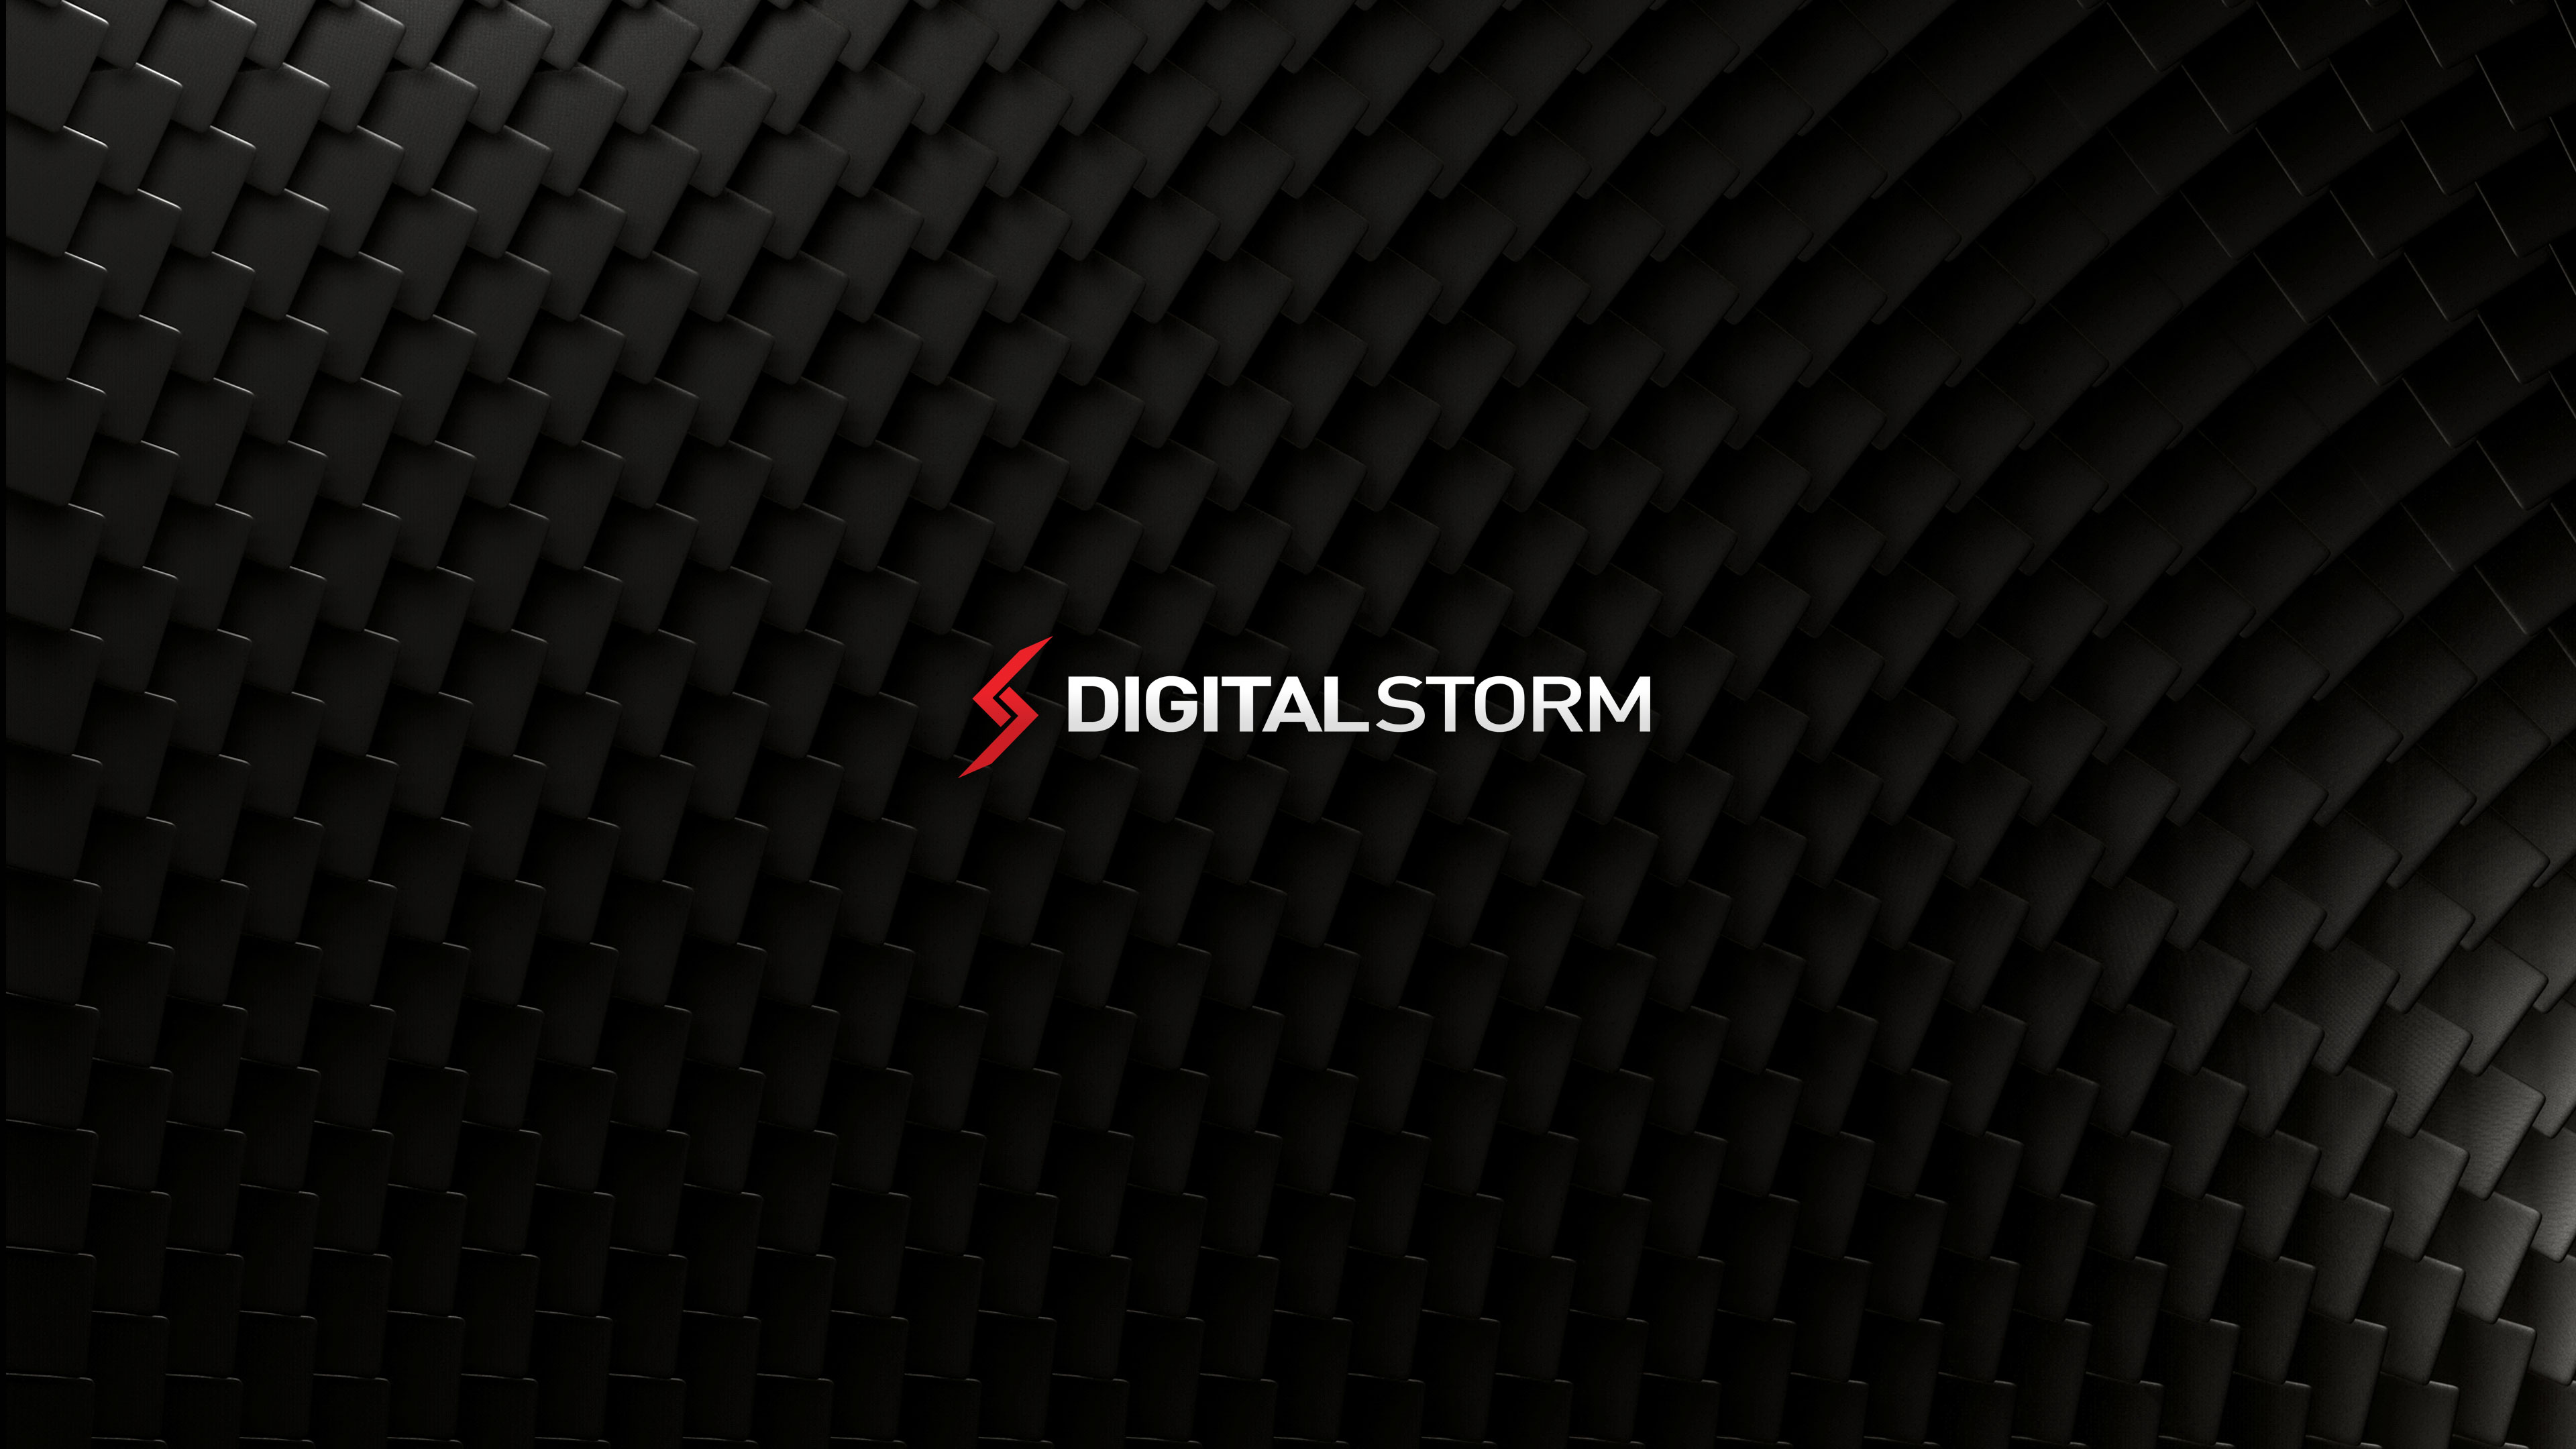 digital storm wallpapers 1920x1200 - photo #2